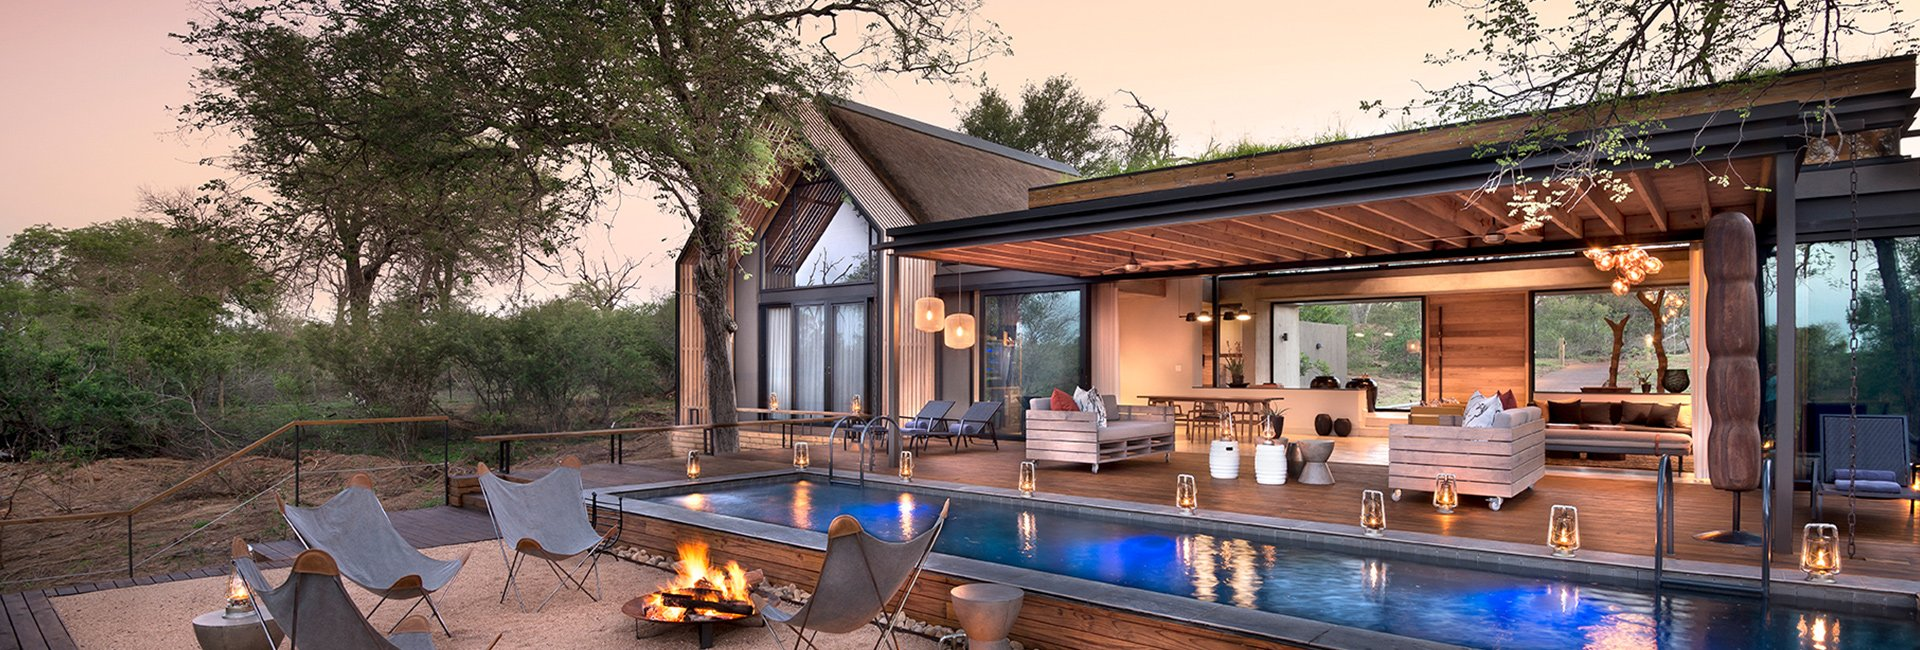 Lions Sands Ivory Lodge Iconic Africa Luxury Safaris